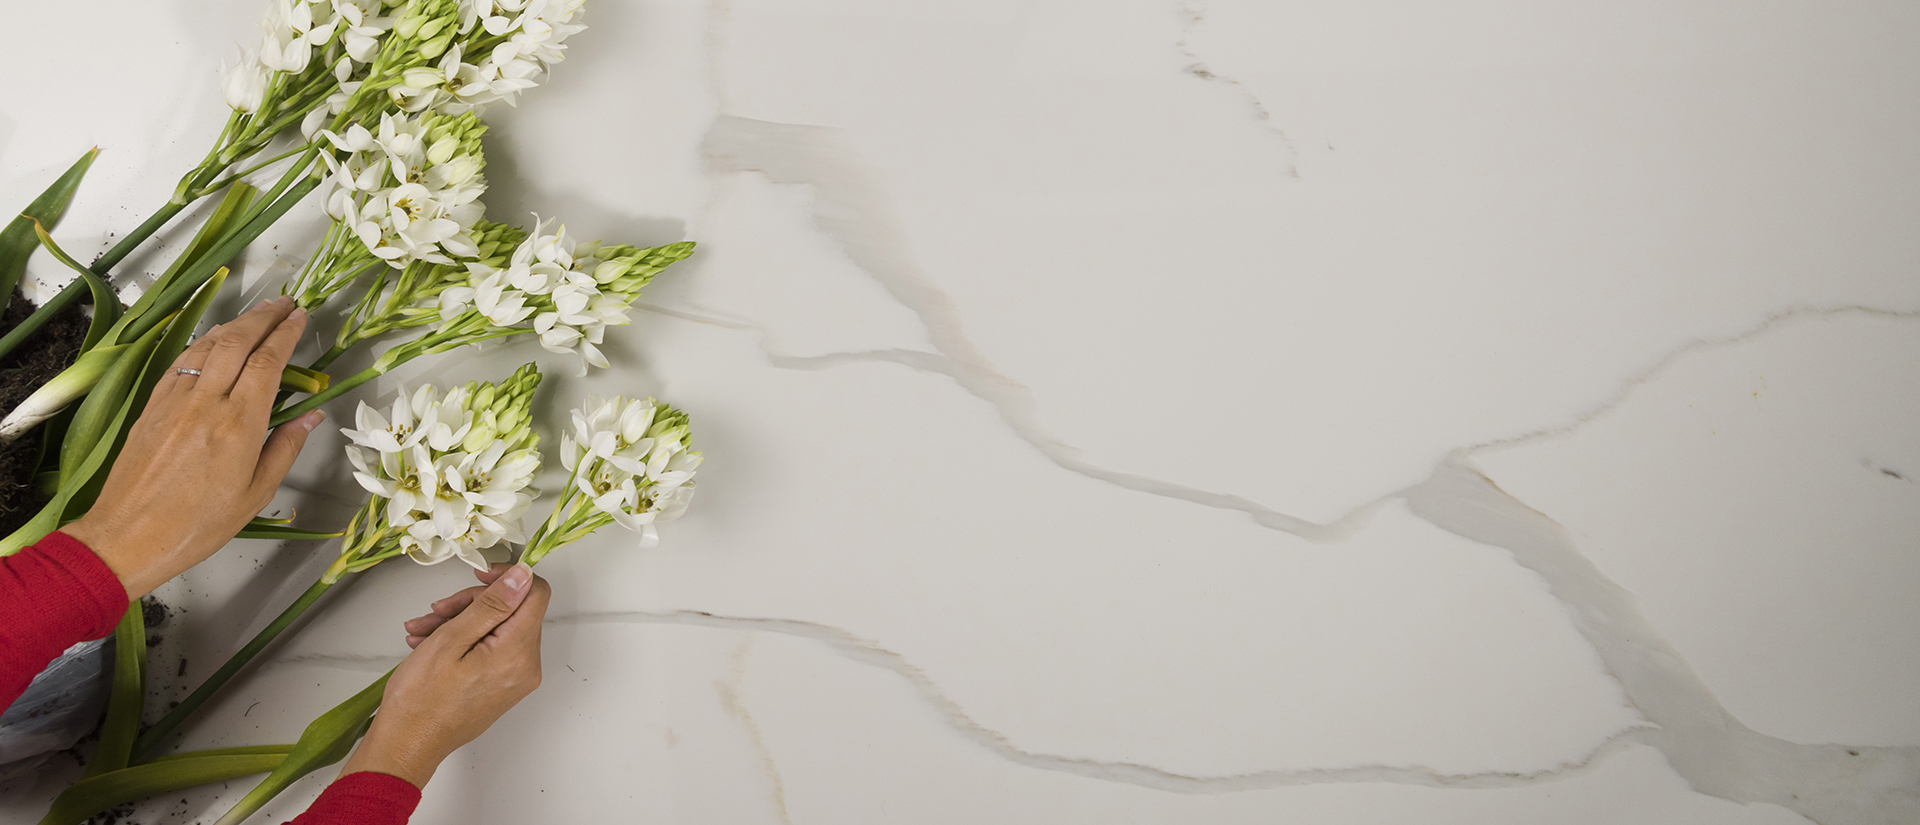 Calacatta Gold  quartz countertop